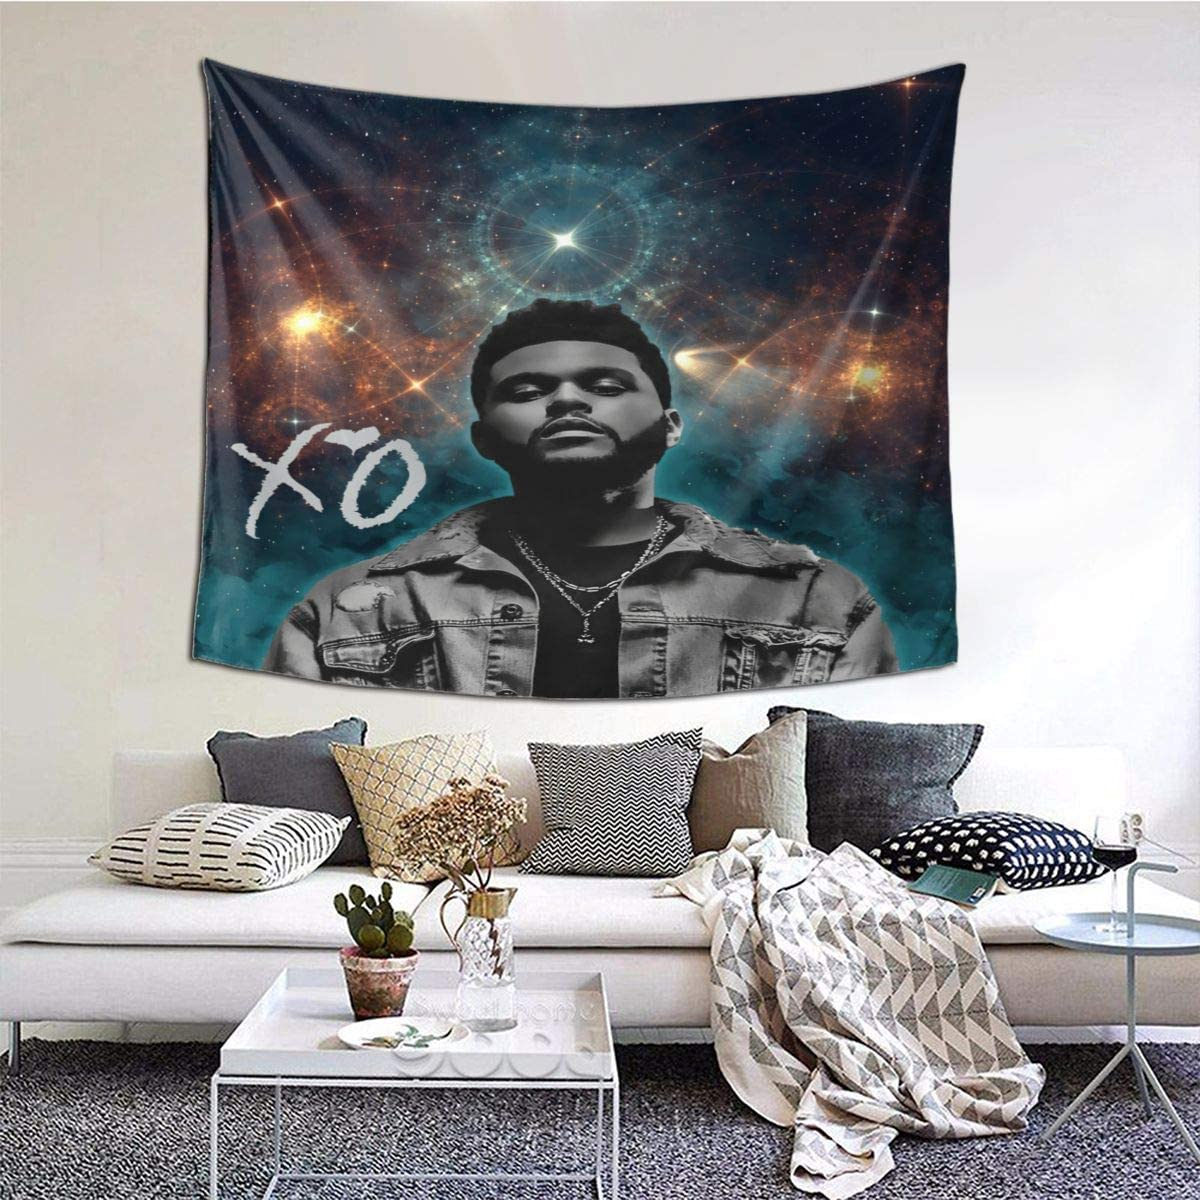 NOT BRAND 60×51 Inches XO The Weeknd Wall Tapestry with Art Nature Home Decorations for Living Room Bedroom Dorm Decor